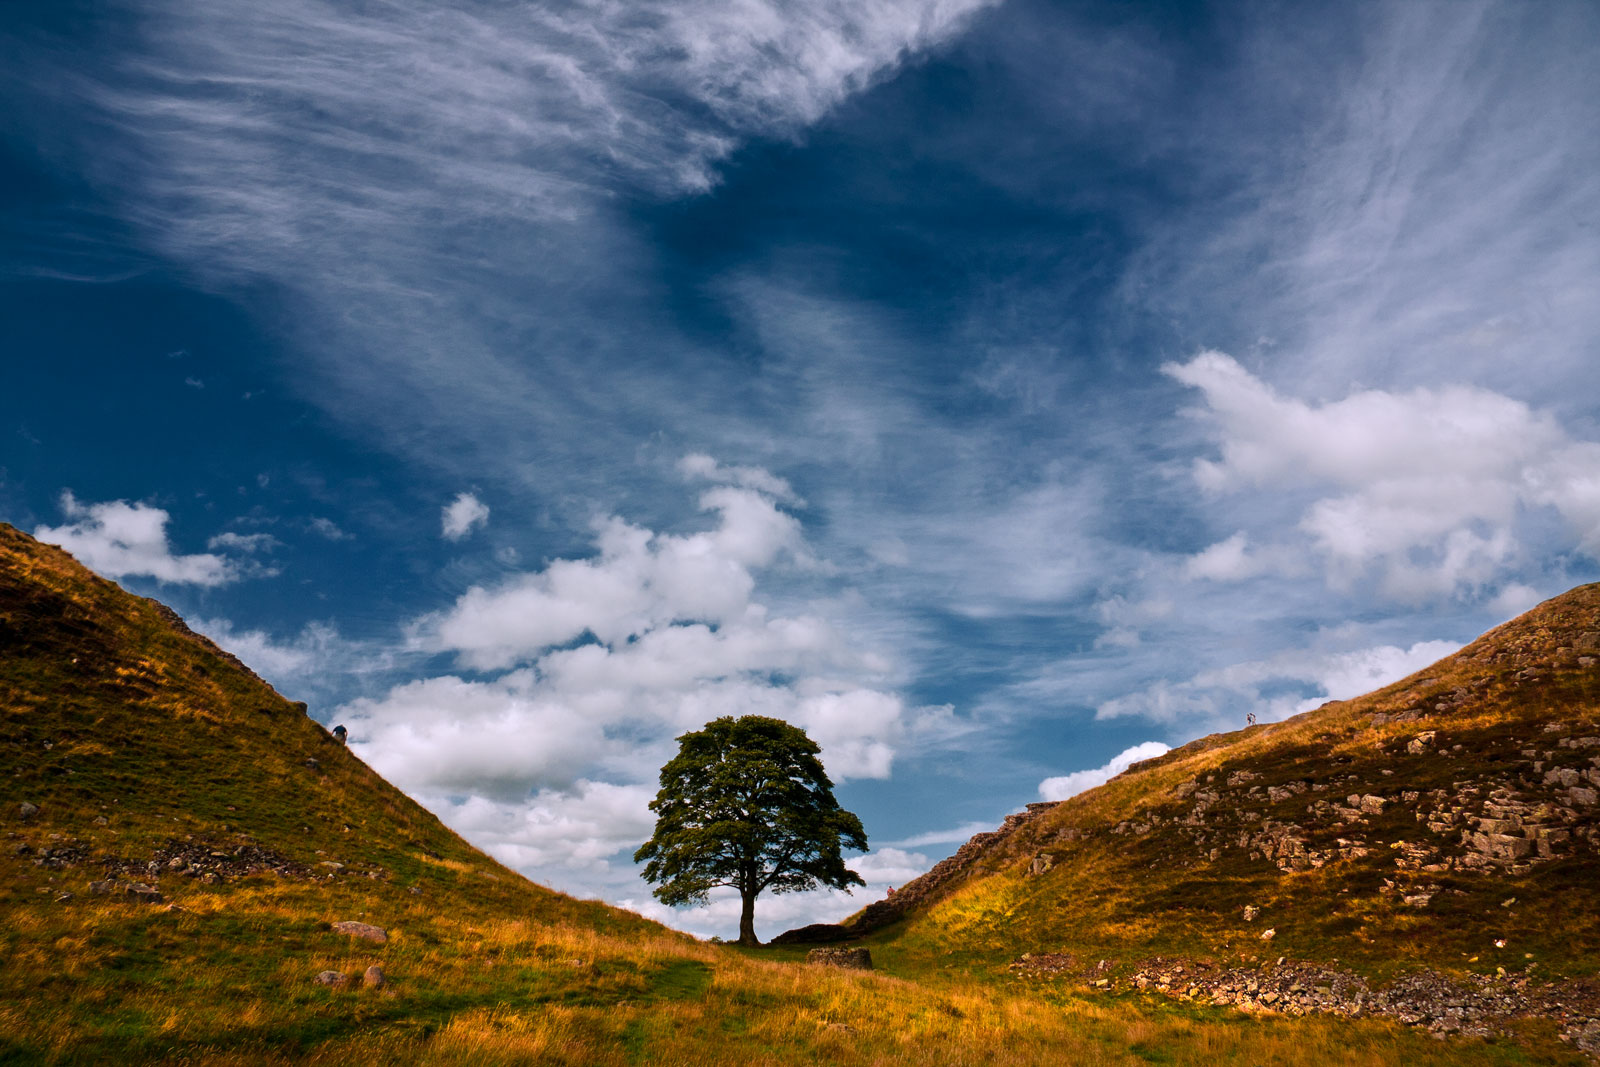 Sycamore Gap by newcastlemale